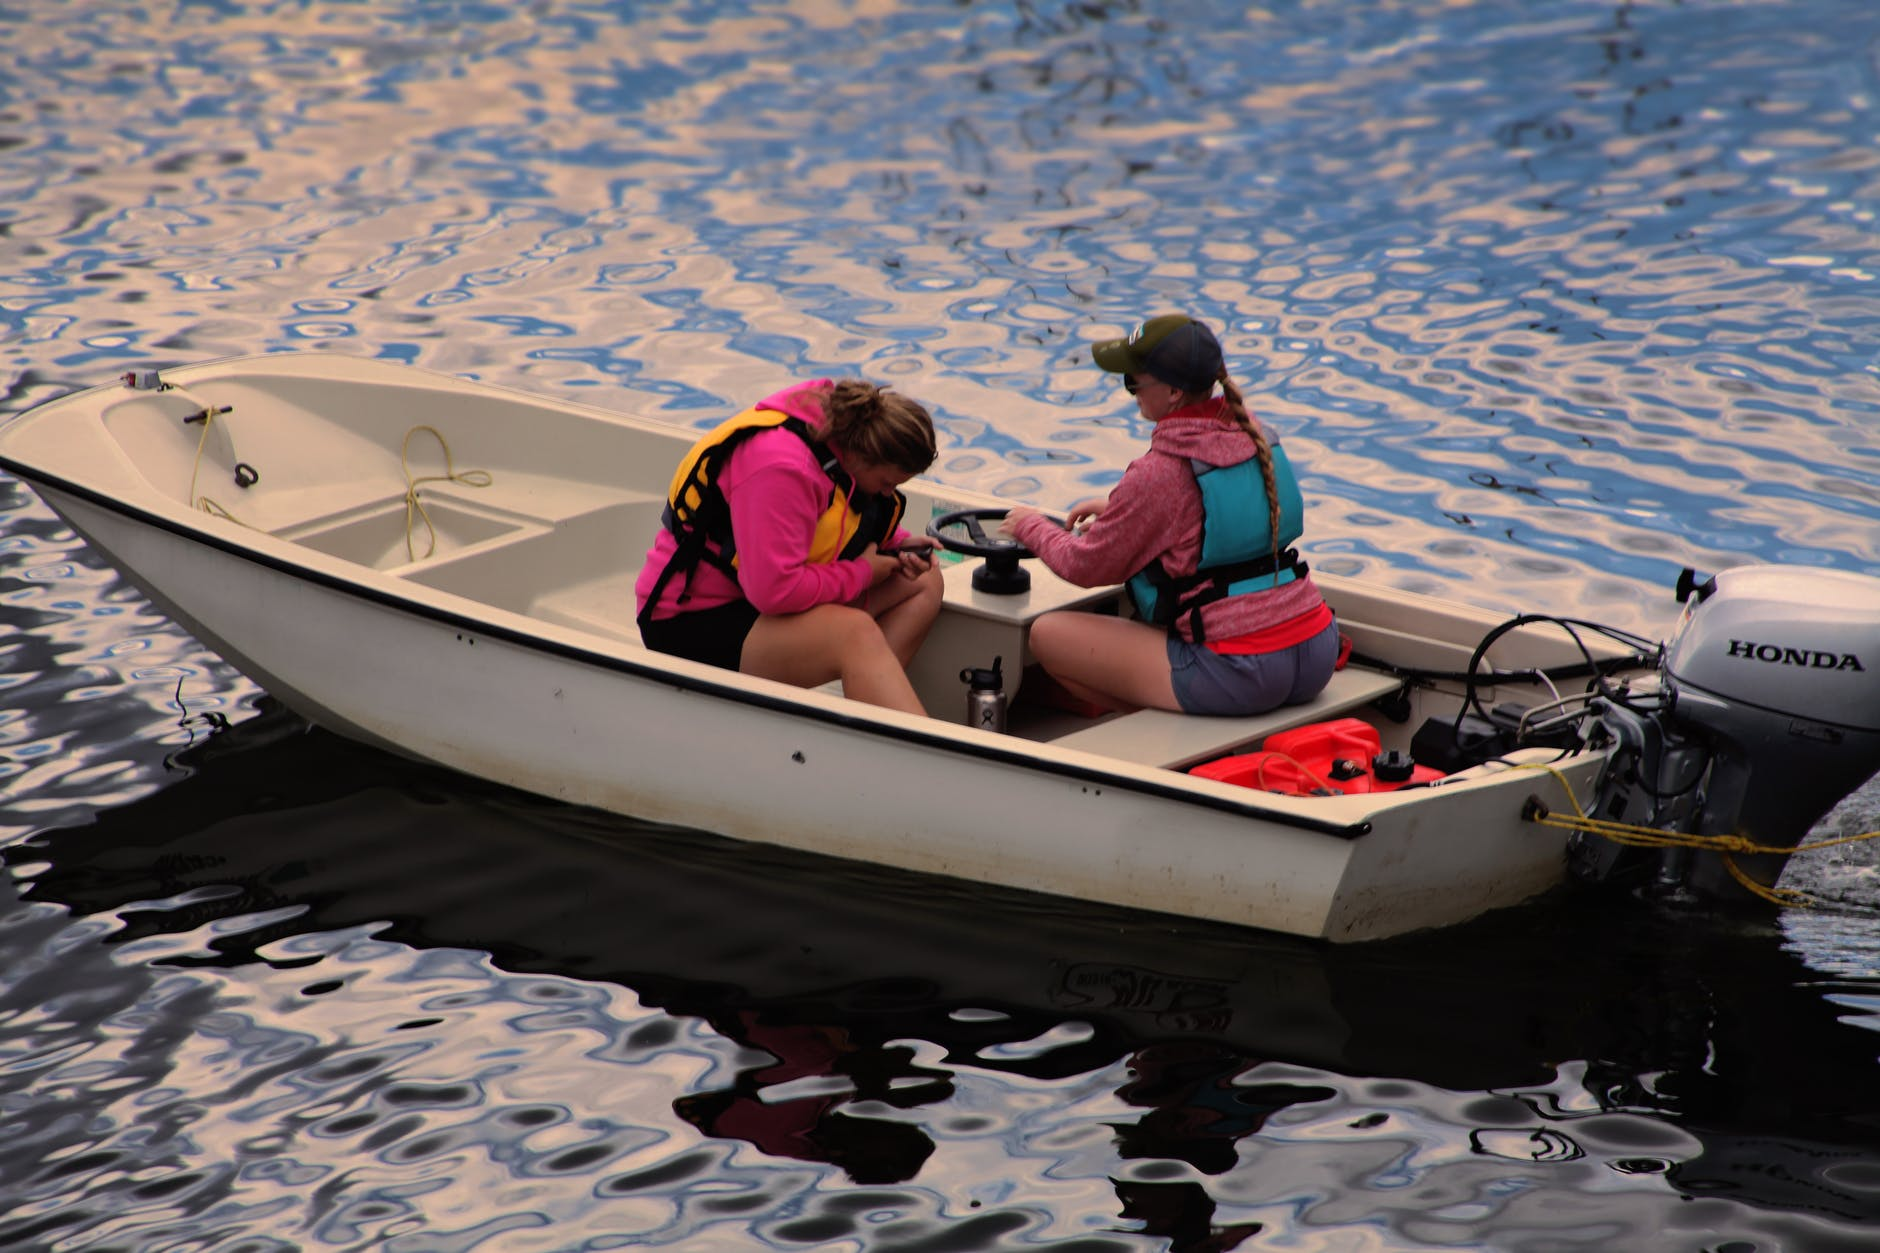 Insurance for Recreational Vehicles: two women in a fishing boat